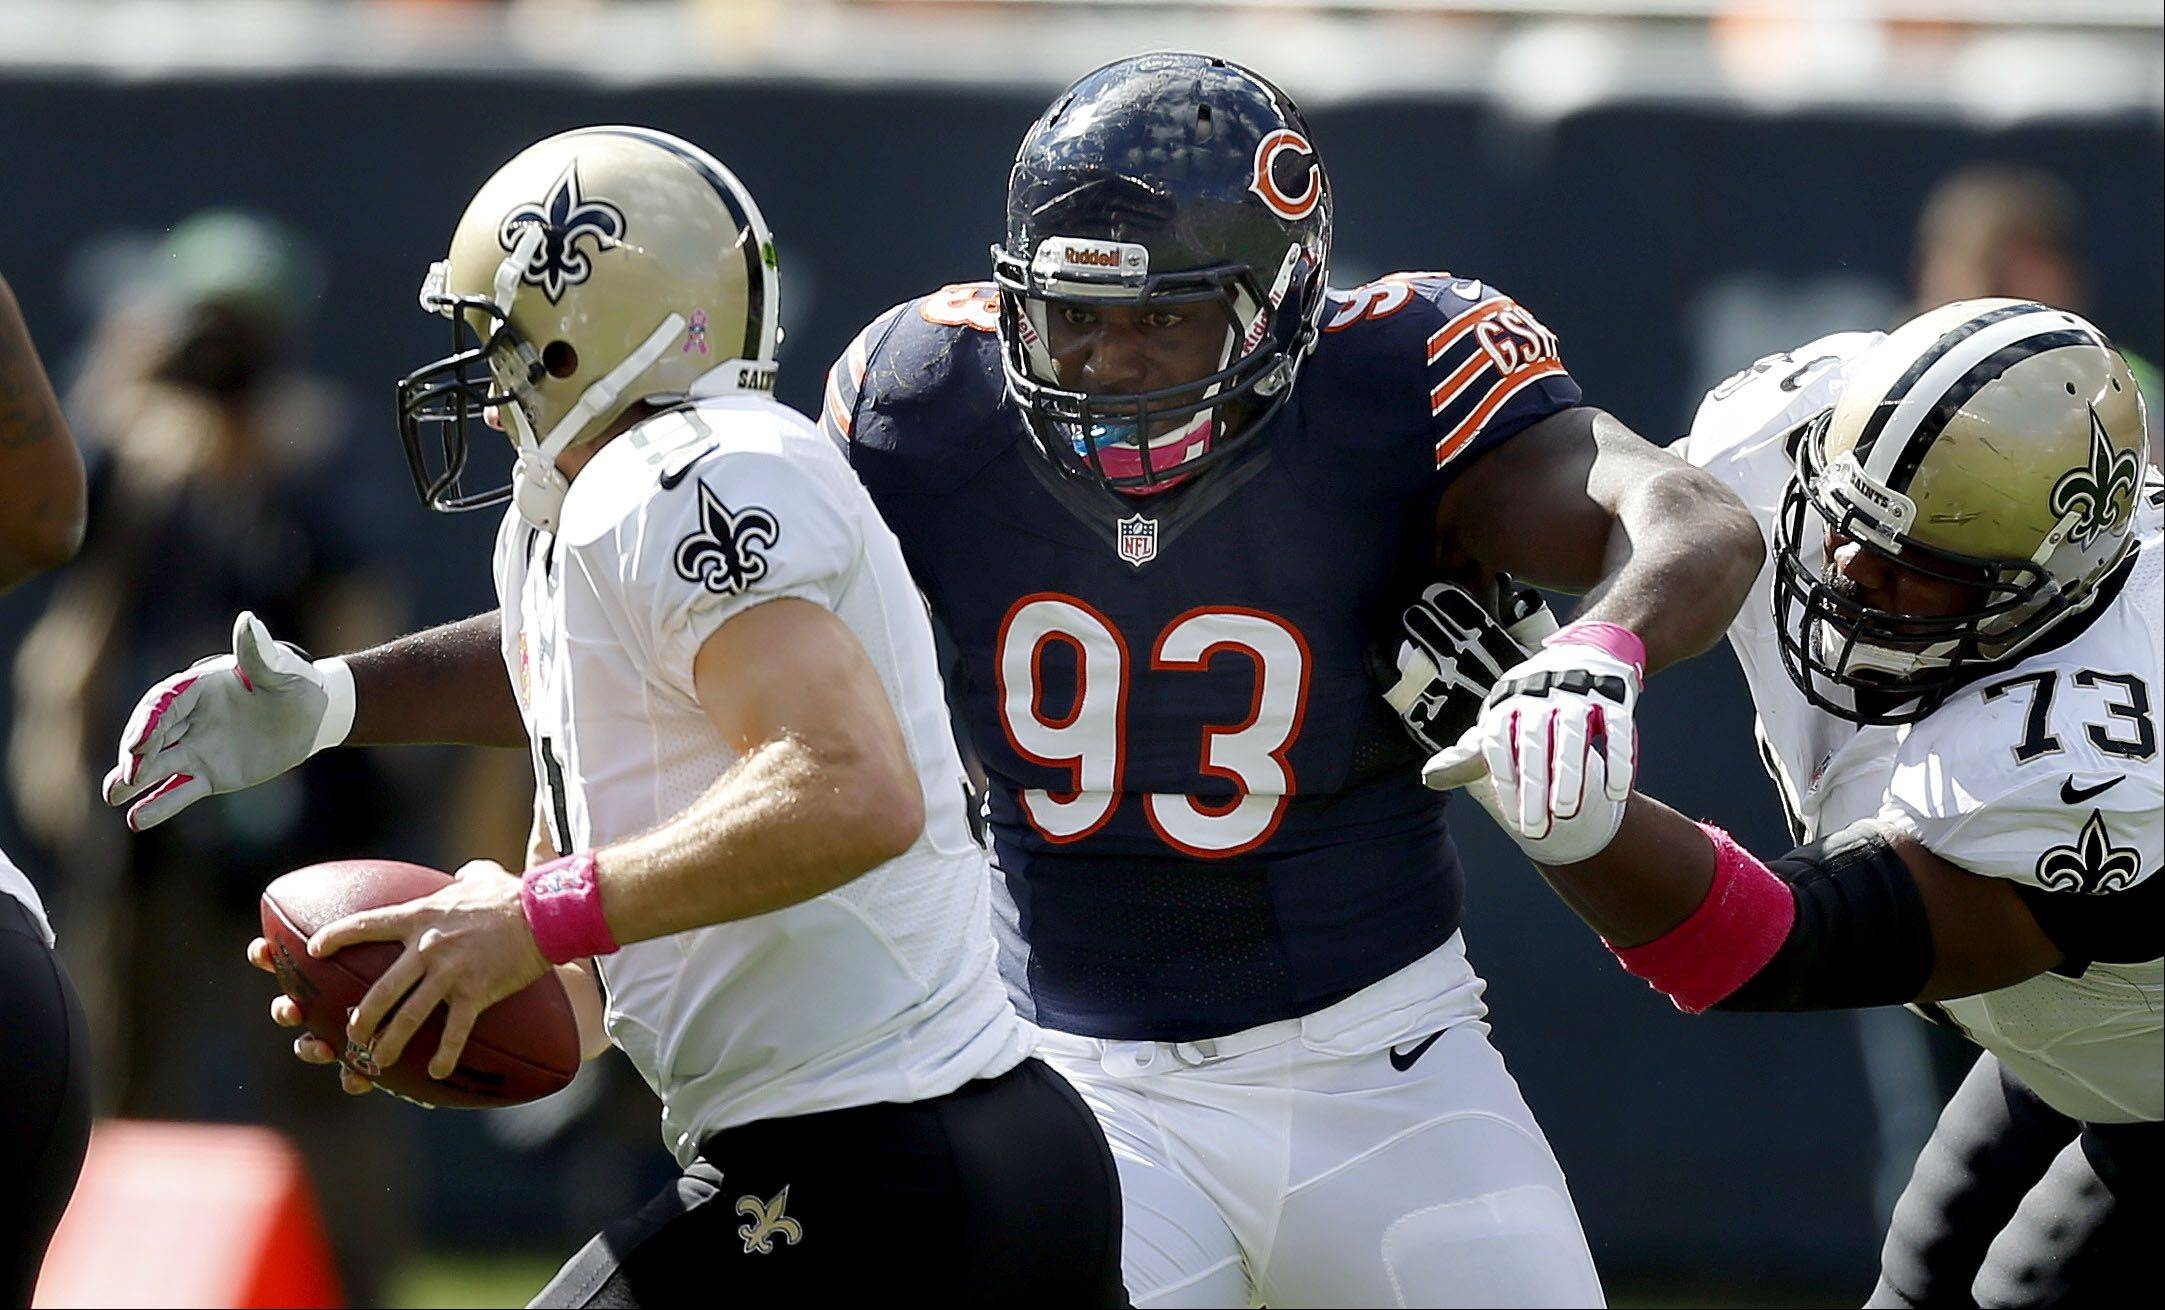 Chicago Bears defensive tackle Nate Collins sacks New Orleans Saints quarterback Drew Brees.